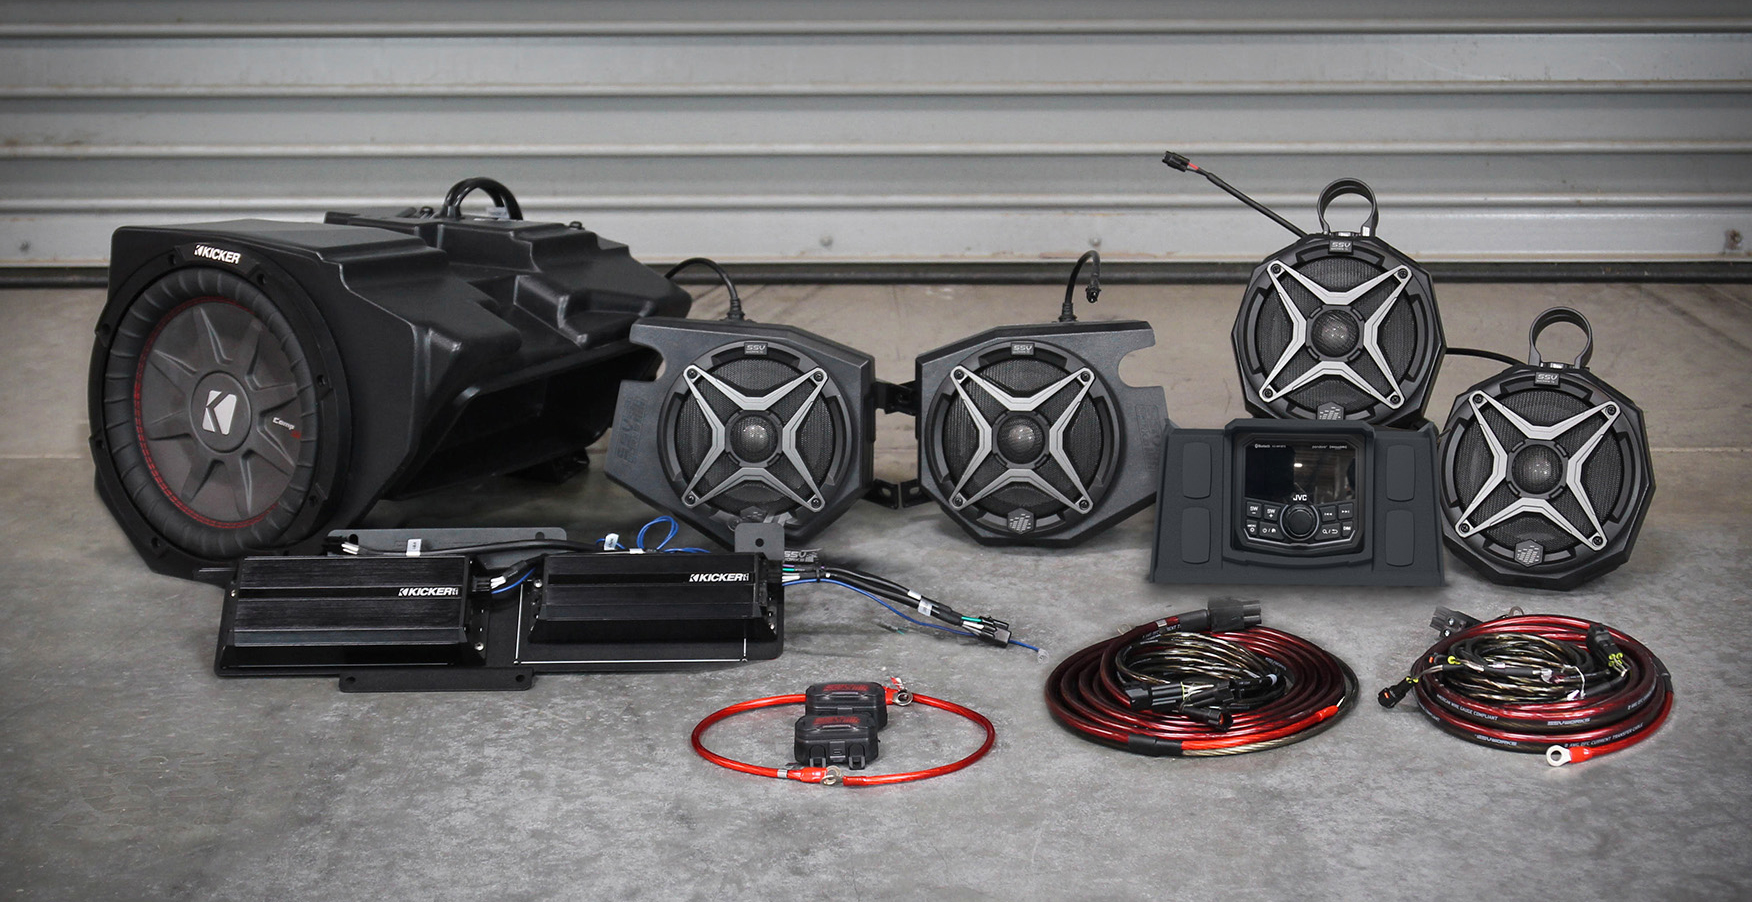 SSV Works RZ4 5A1 kits 2020HR